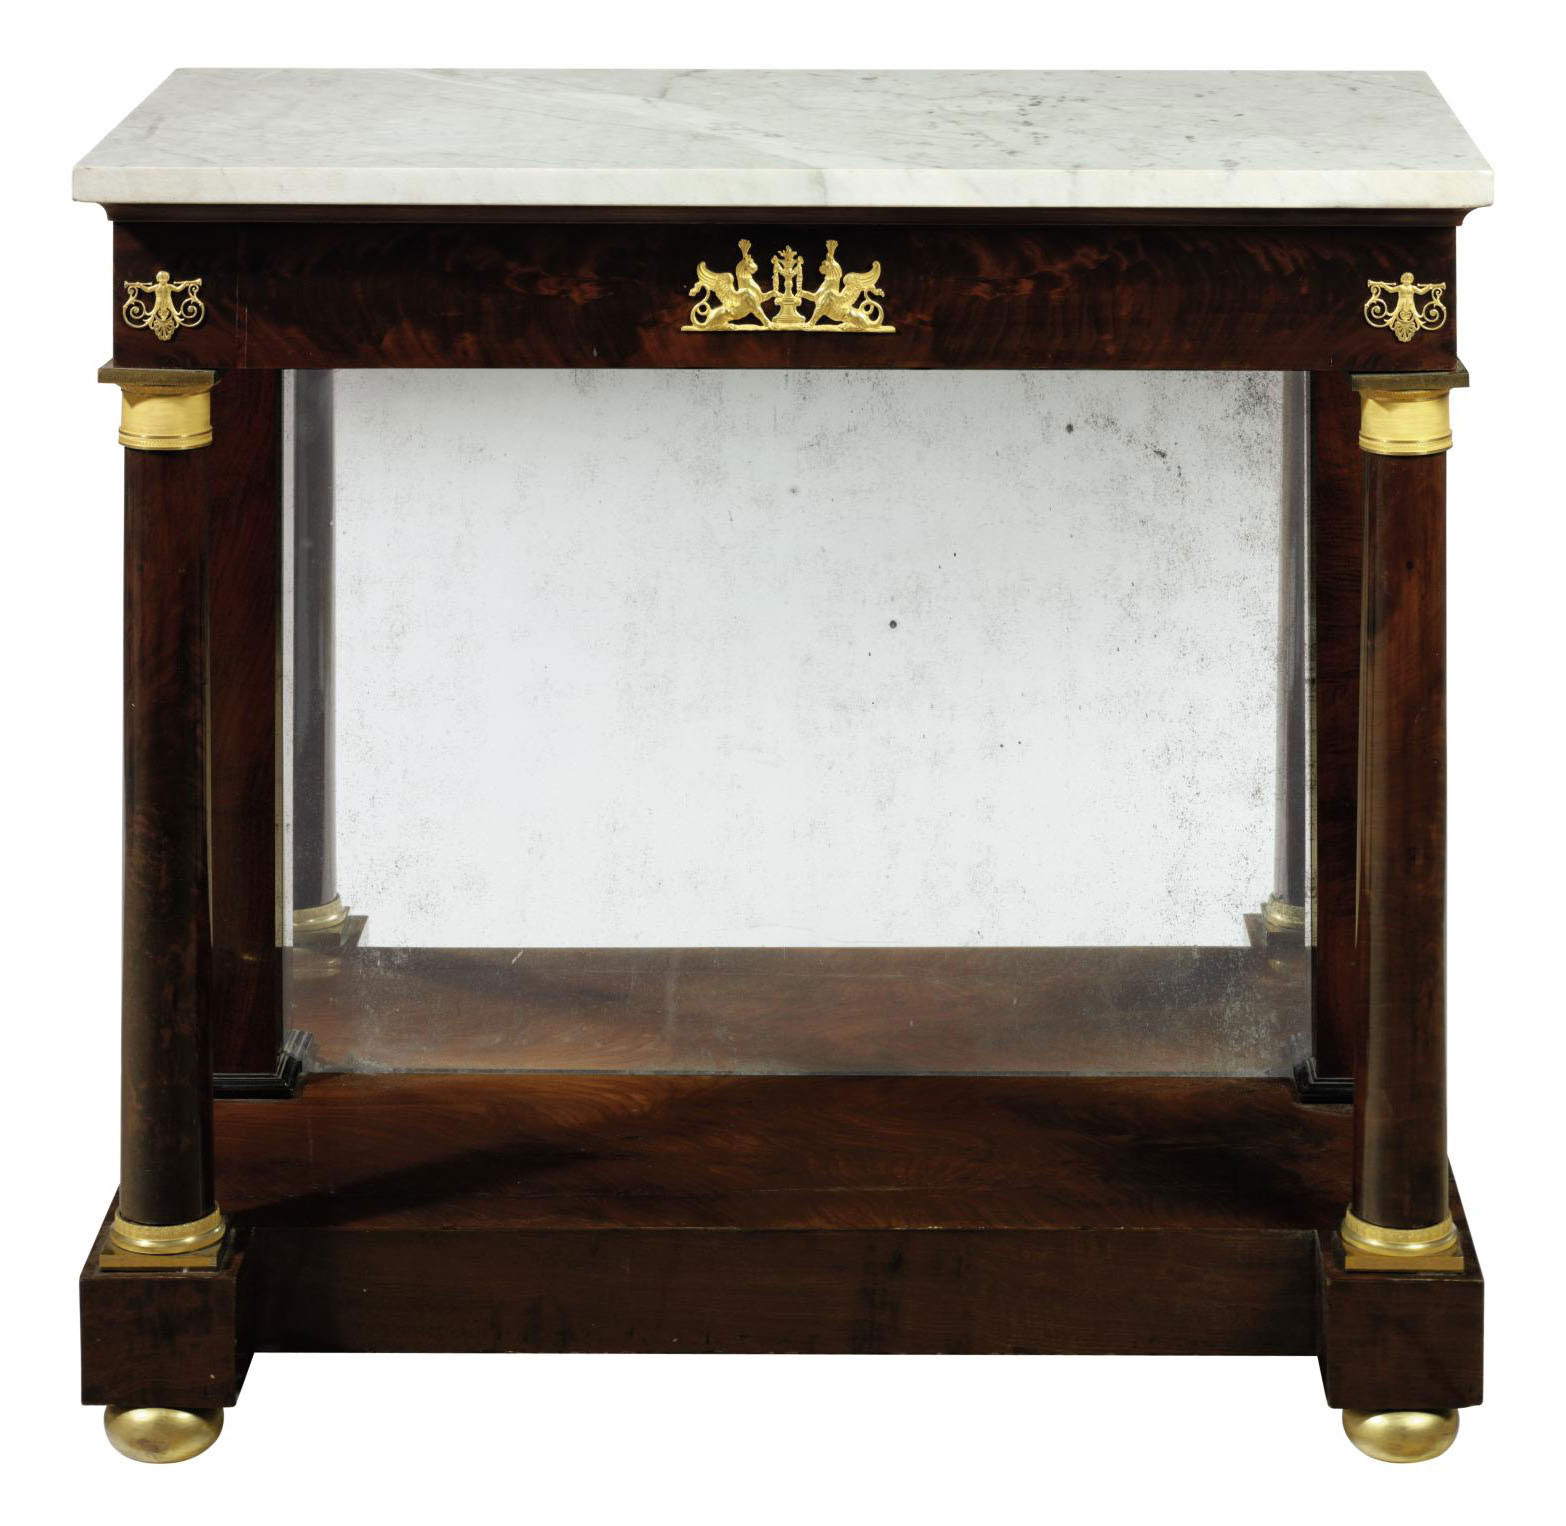 A CLASSICAL MAHOGANY MARBLE-TOP PIER TABLE